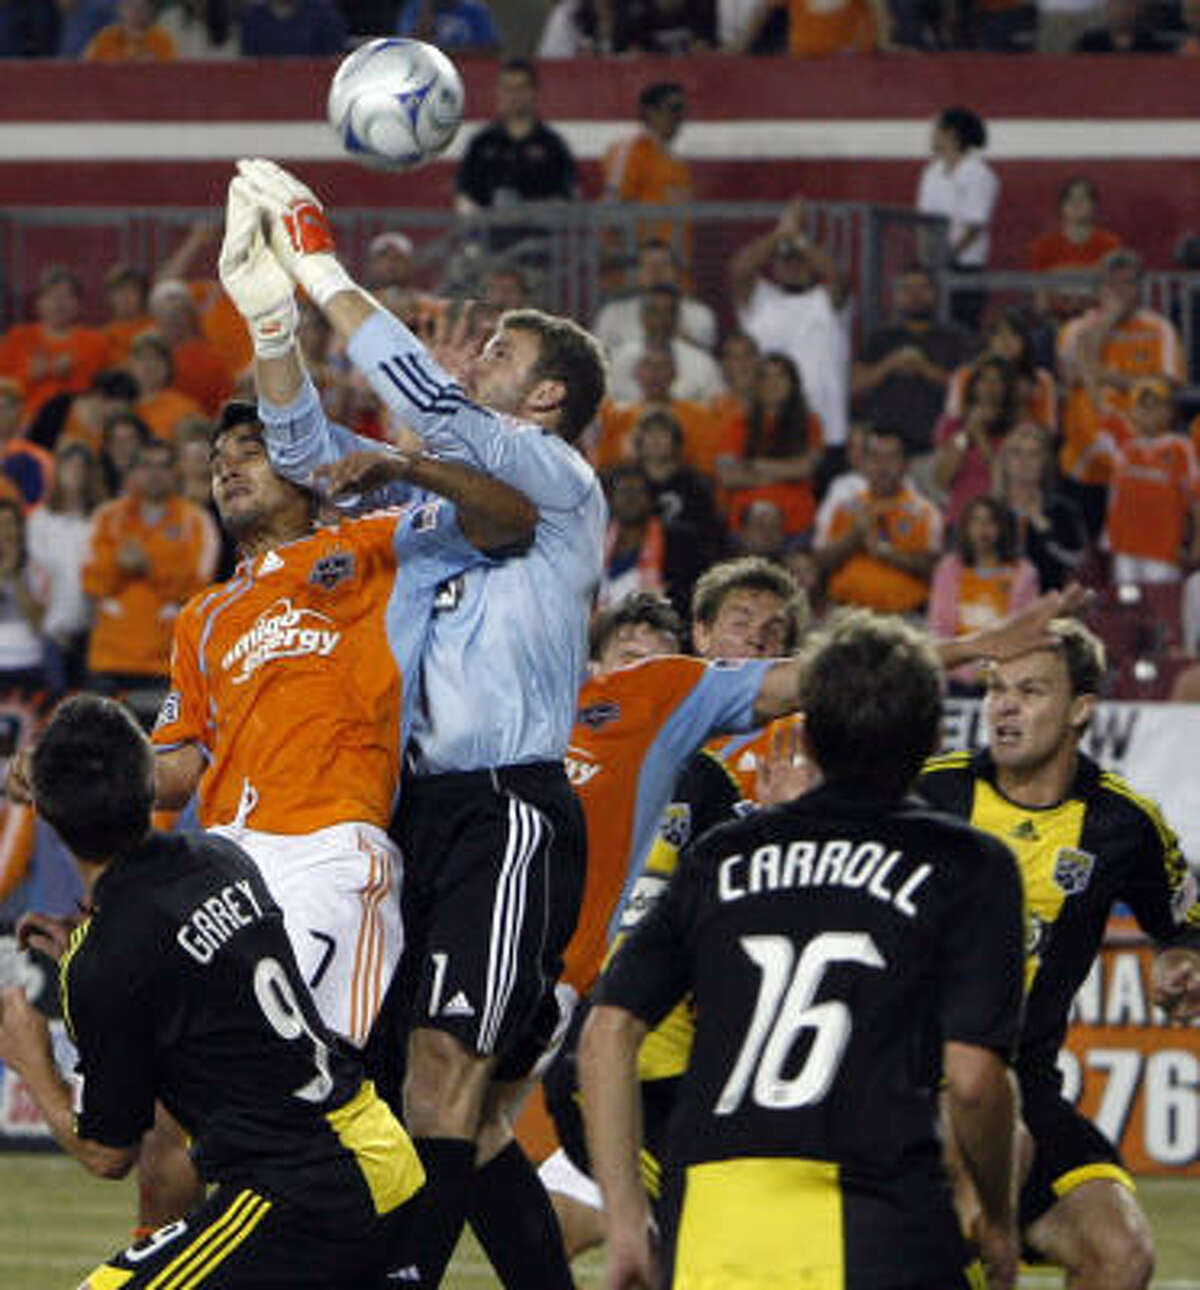 The Dynamo's Chris Wondolowski (#7) battles for the ball against Columbus Crew goalkeeper William Hesmer.